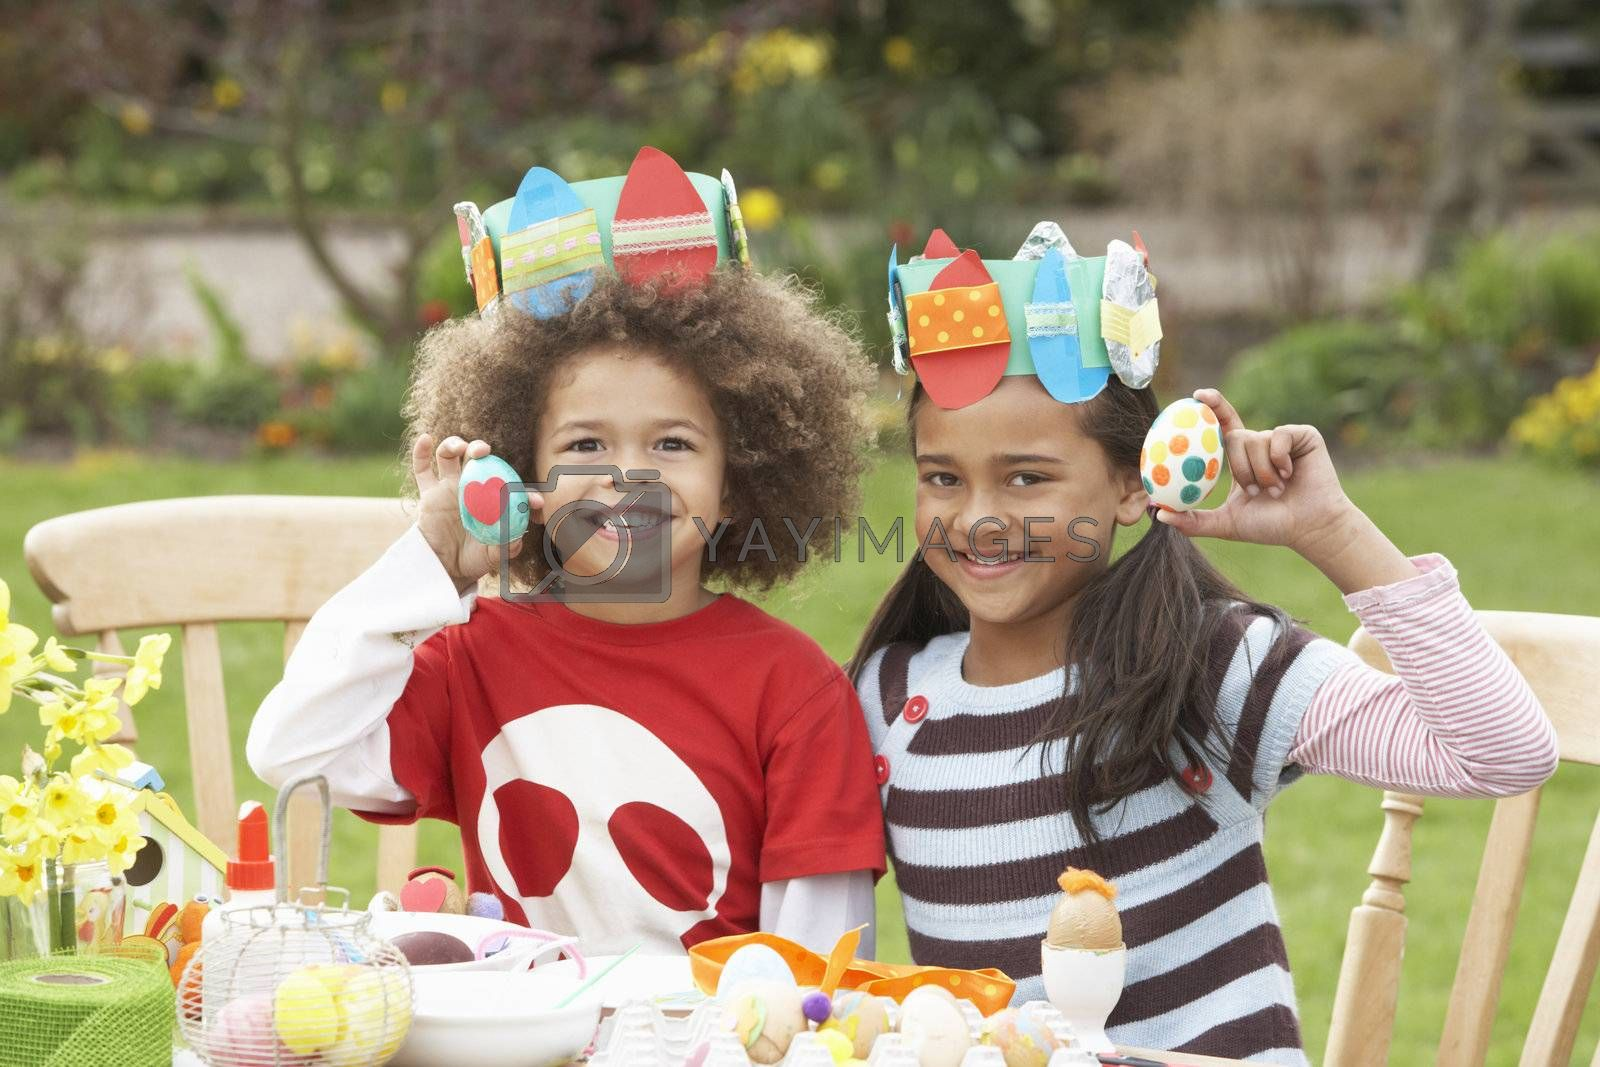 Children Painting Easter Eggs In Gardens by OMG Images